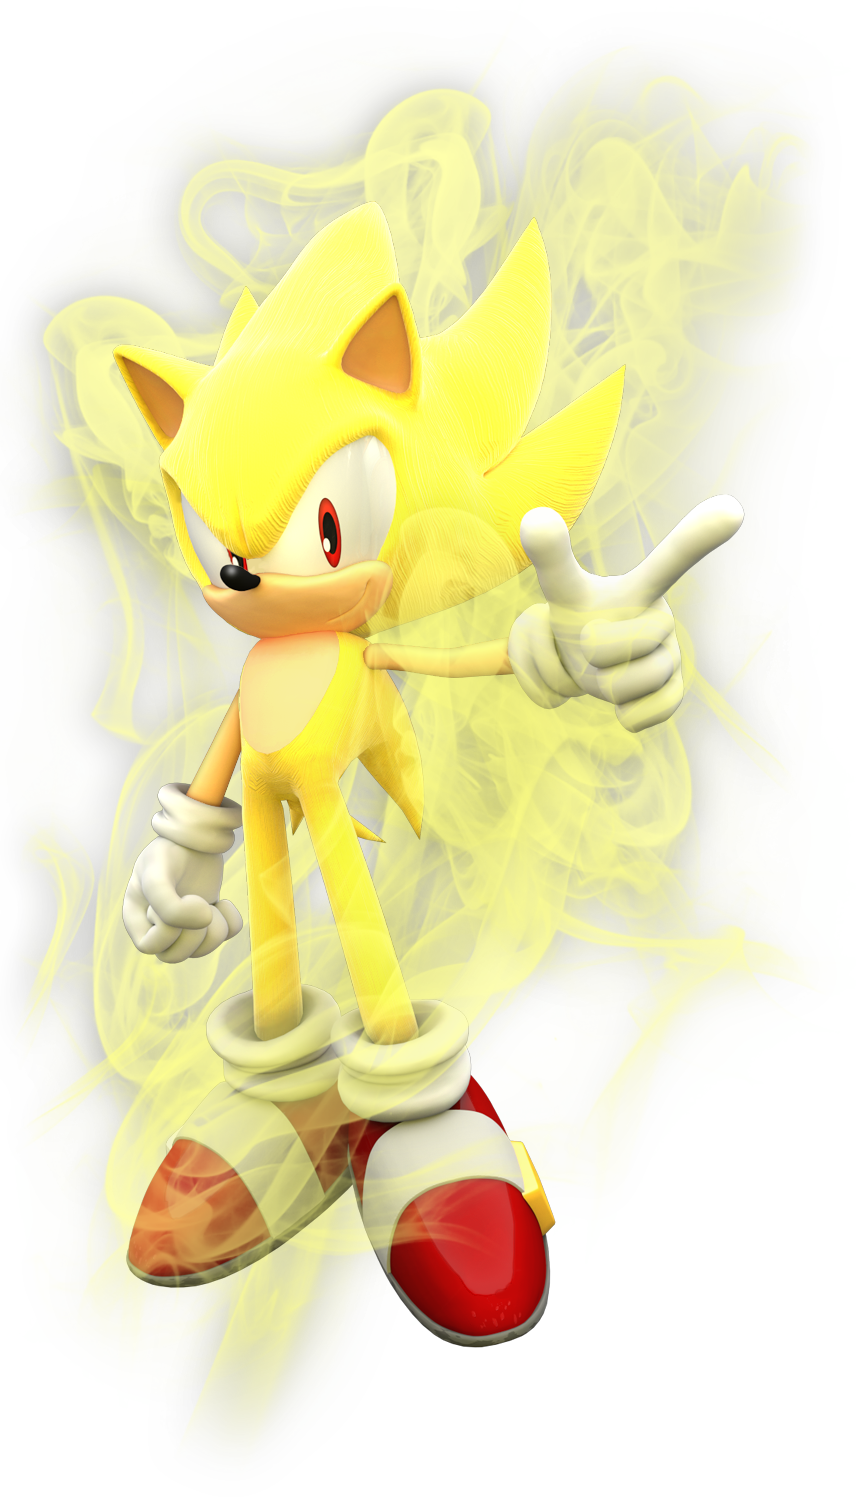 Super sonic png. Image mario and sora